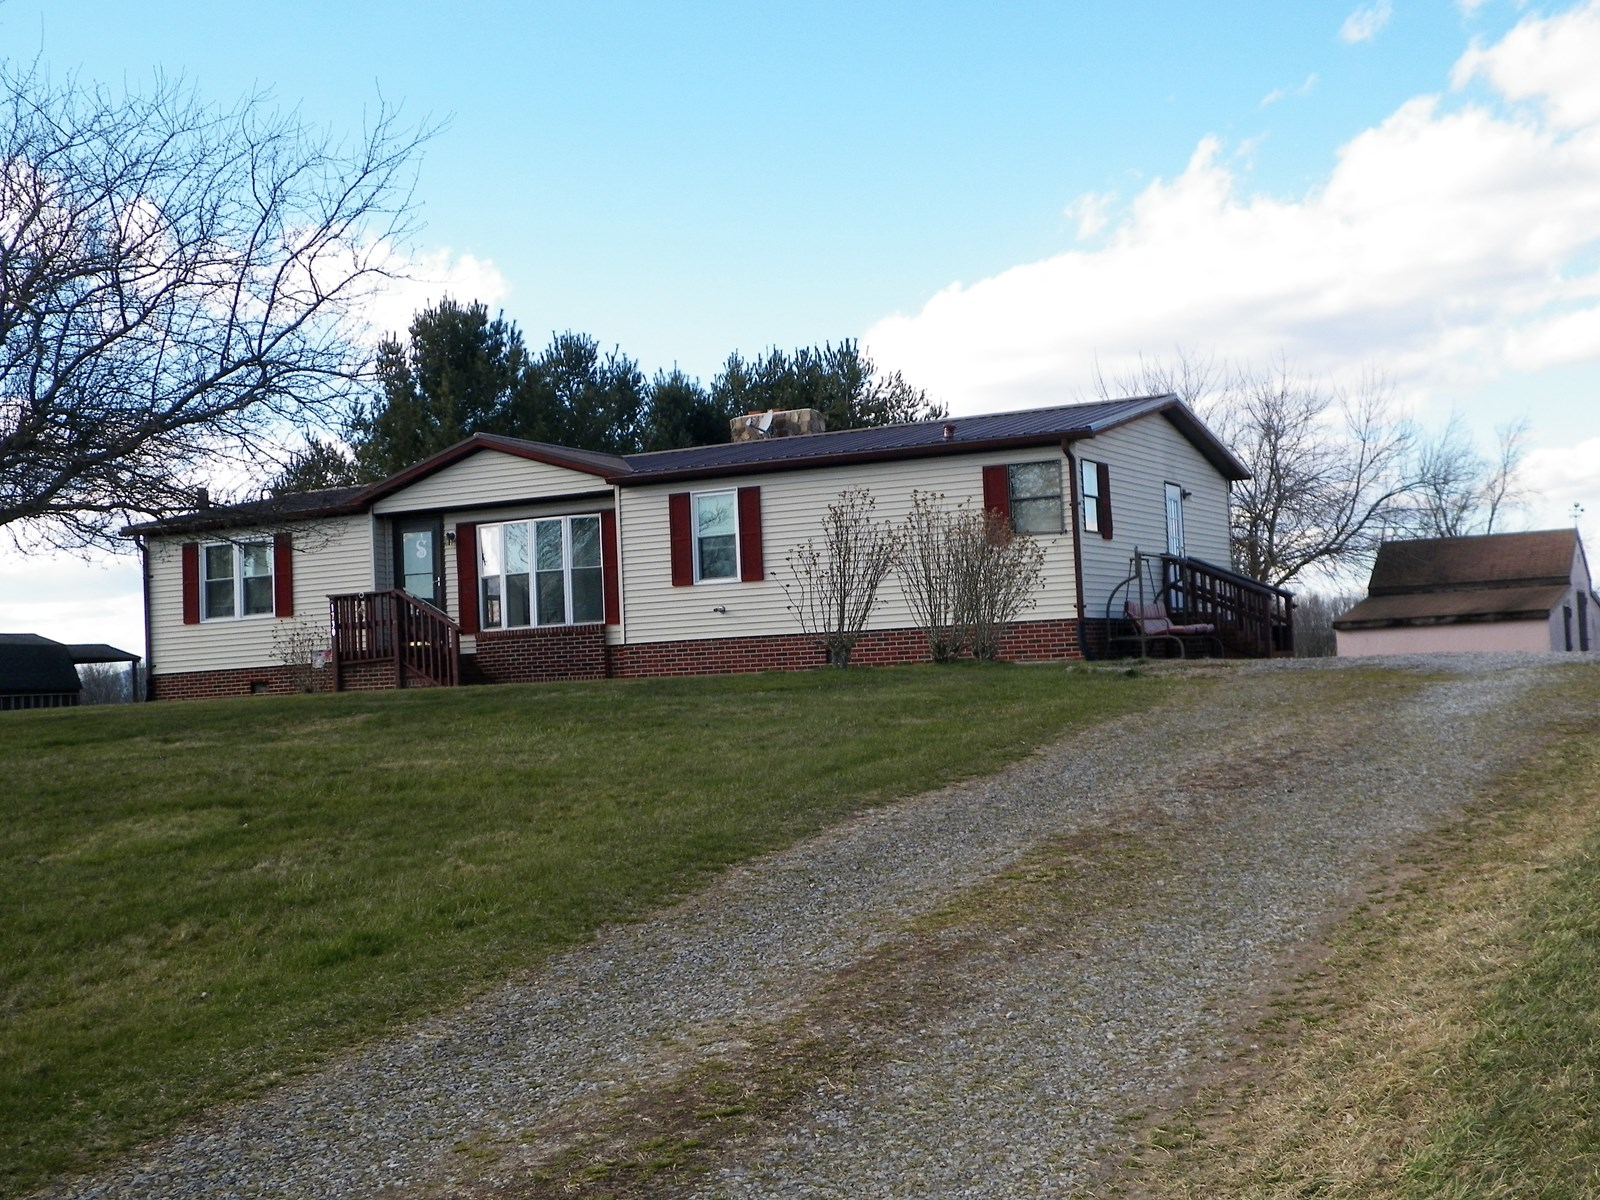 3 BR, 2 BA HOME IN RURAL RETREAT, VA